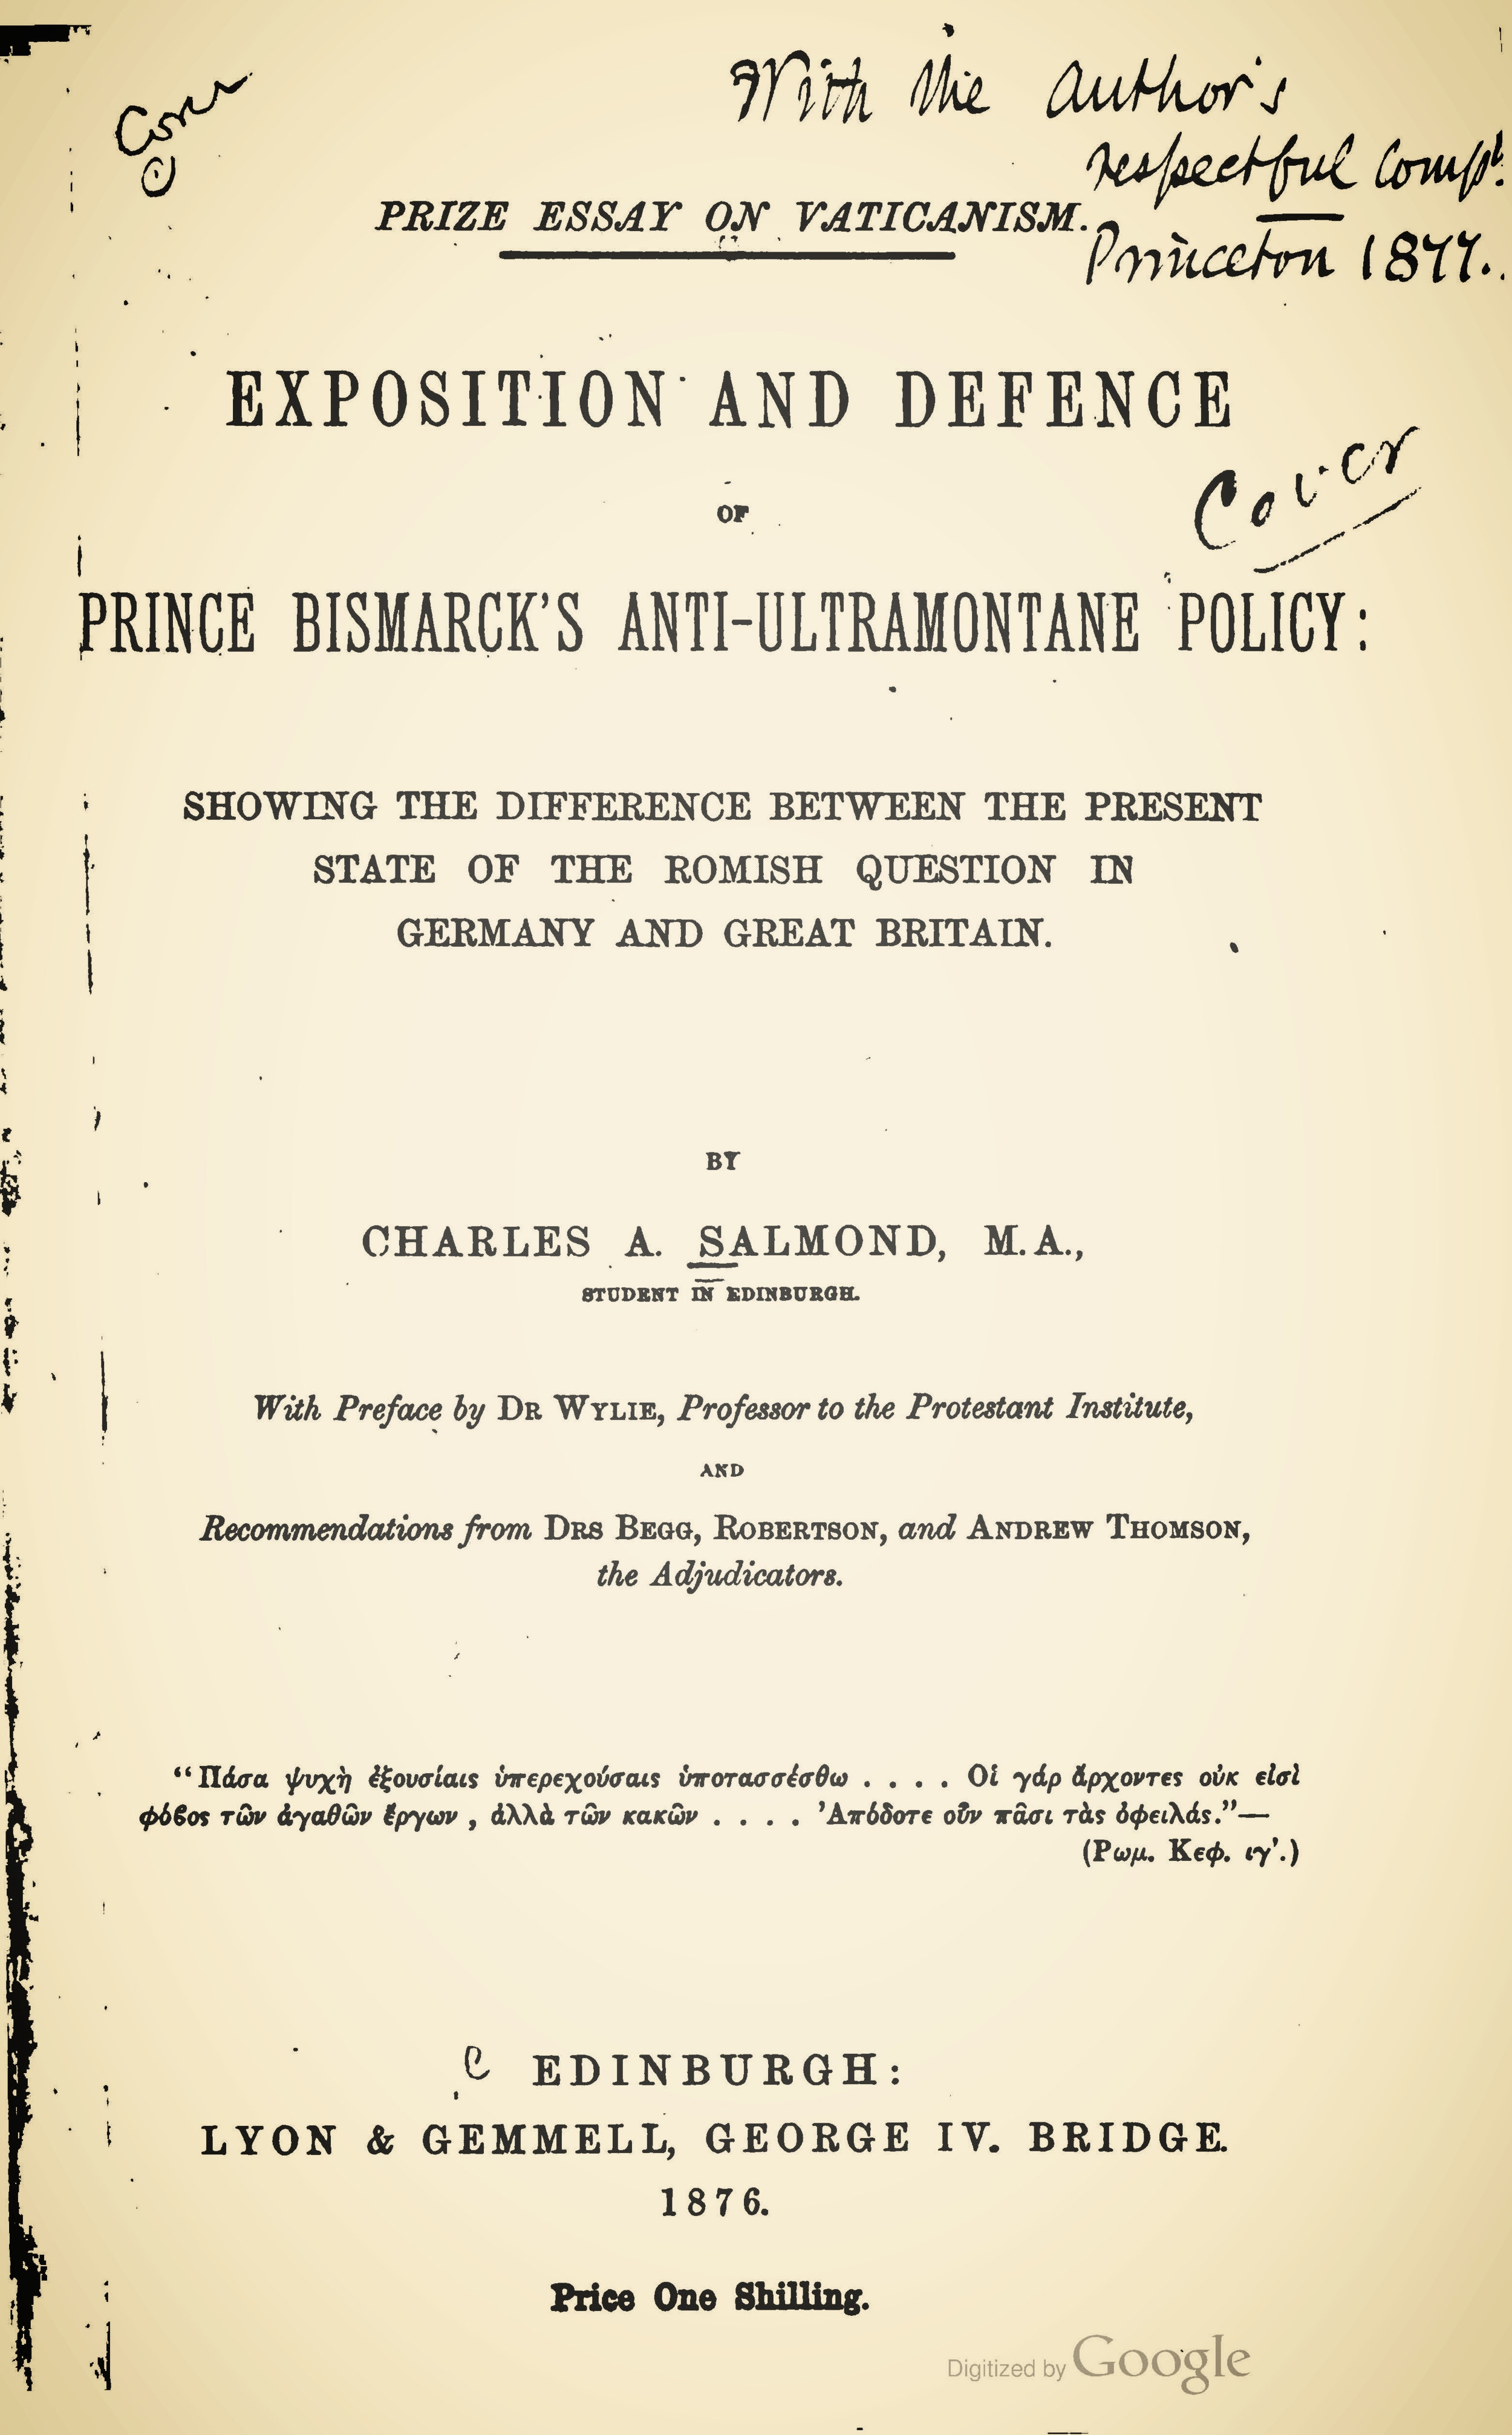 Salmond, Charles Adamson, Prize Essay on Vaticanism Title Page.jpg